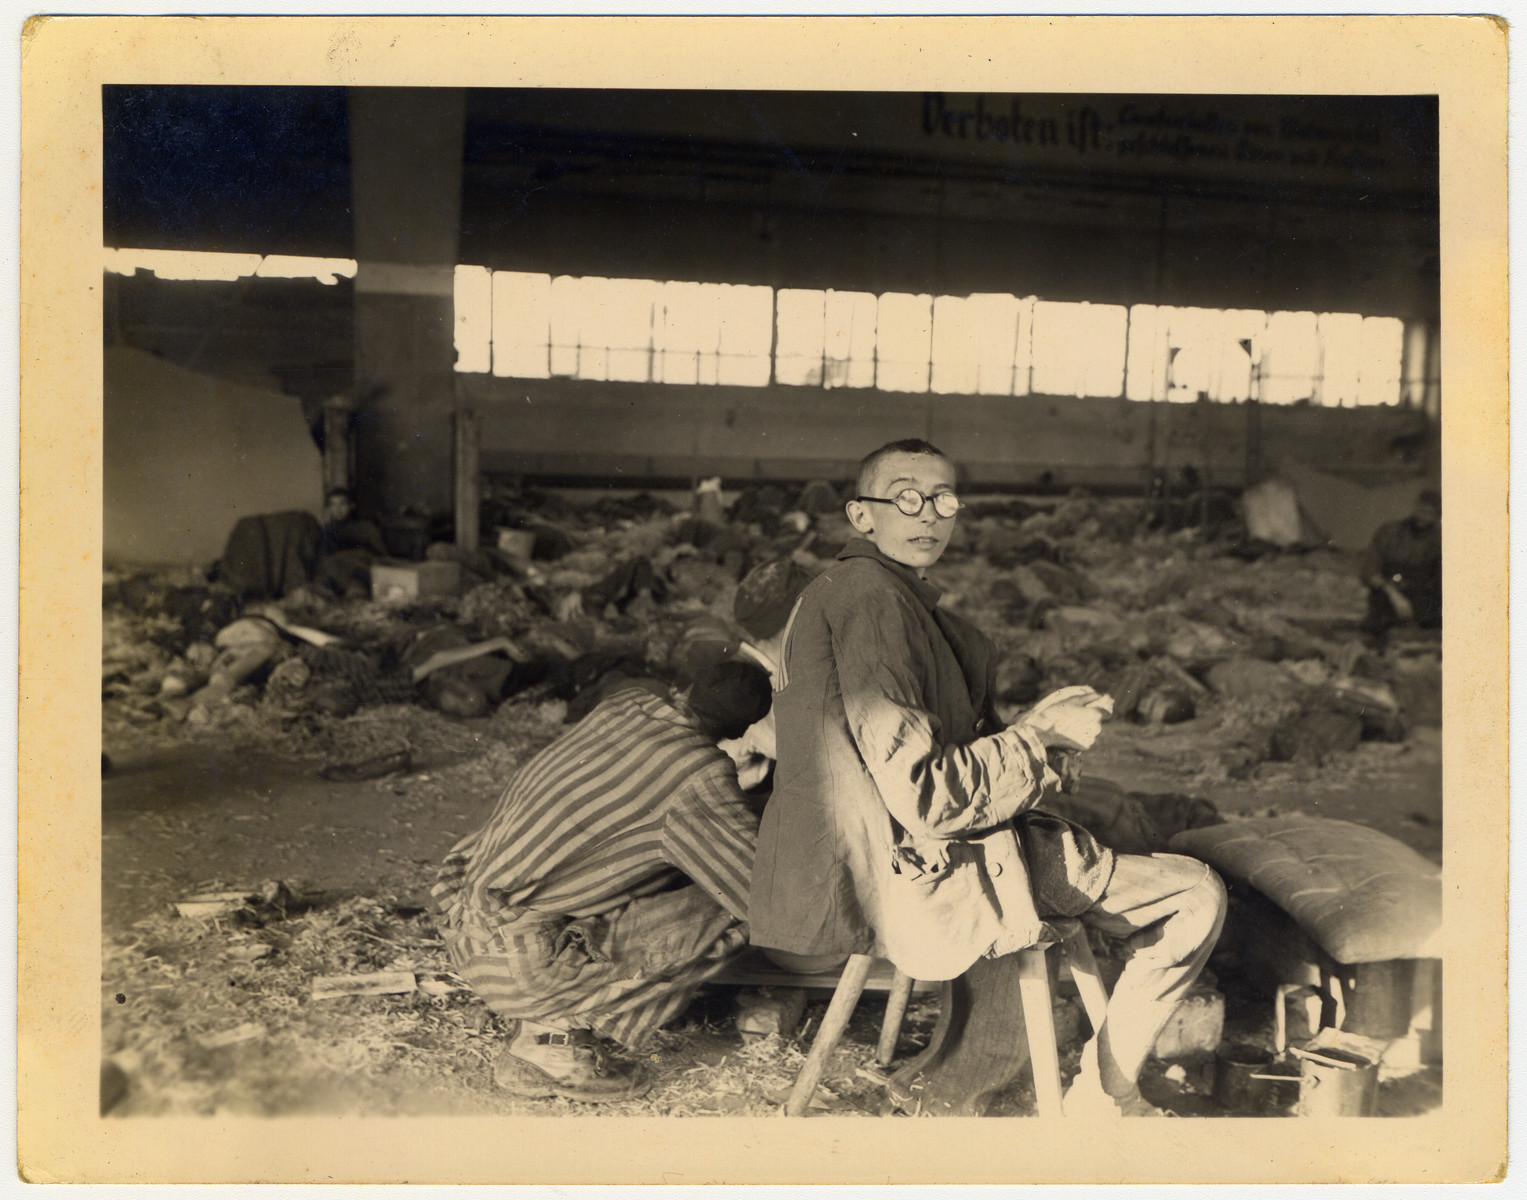 A survivor sits on a stool inside a barrack in Nordhausen surrounded by corpses.